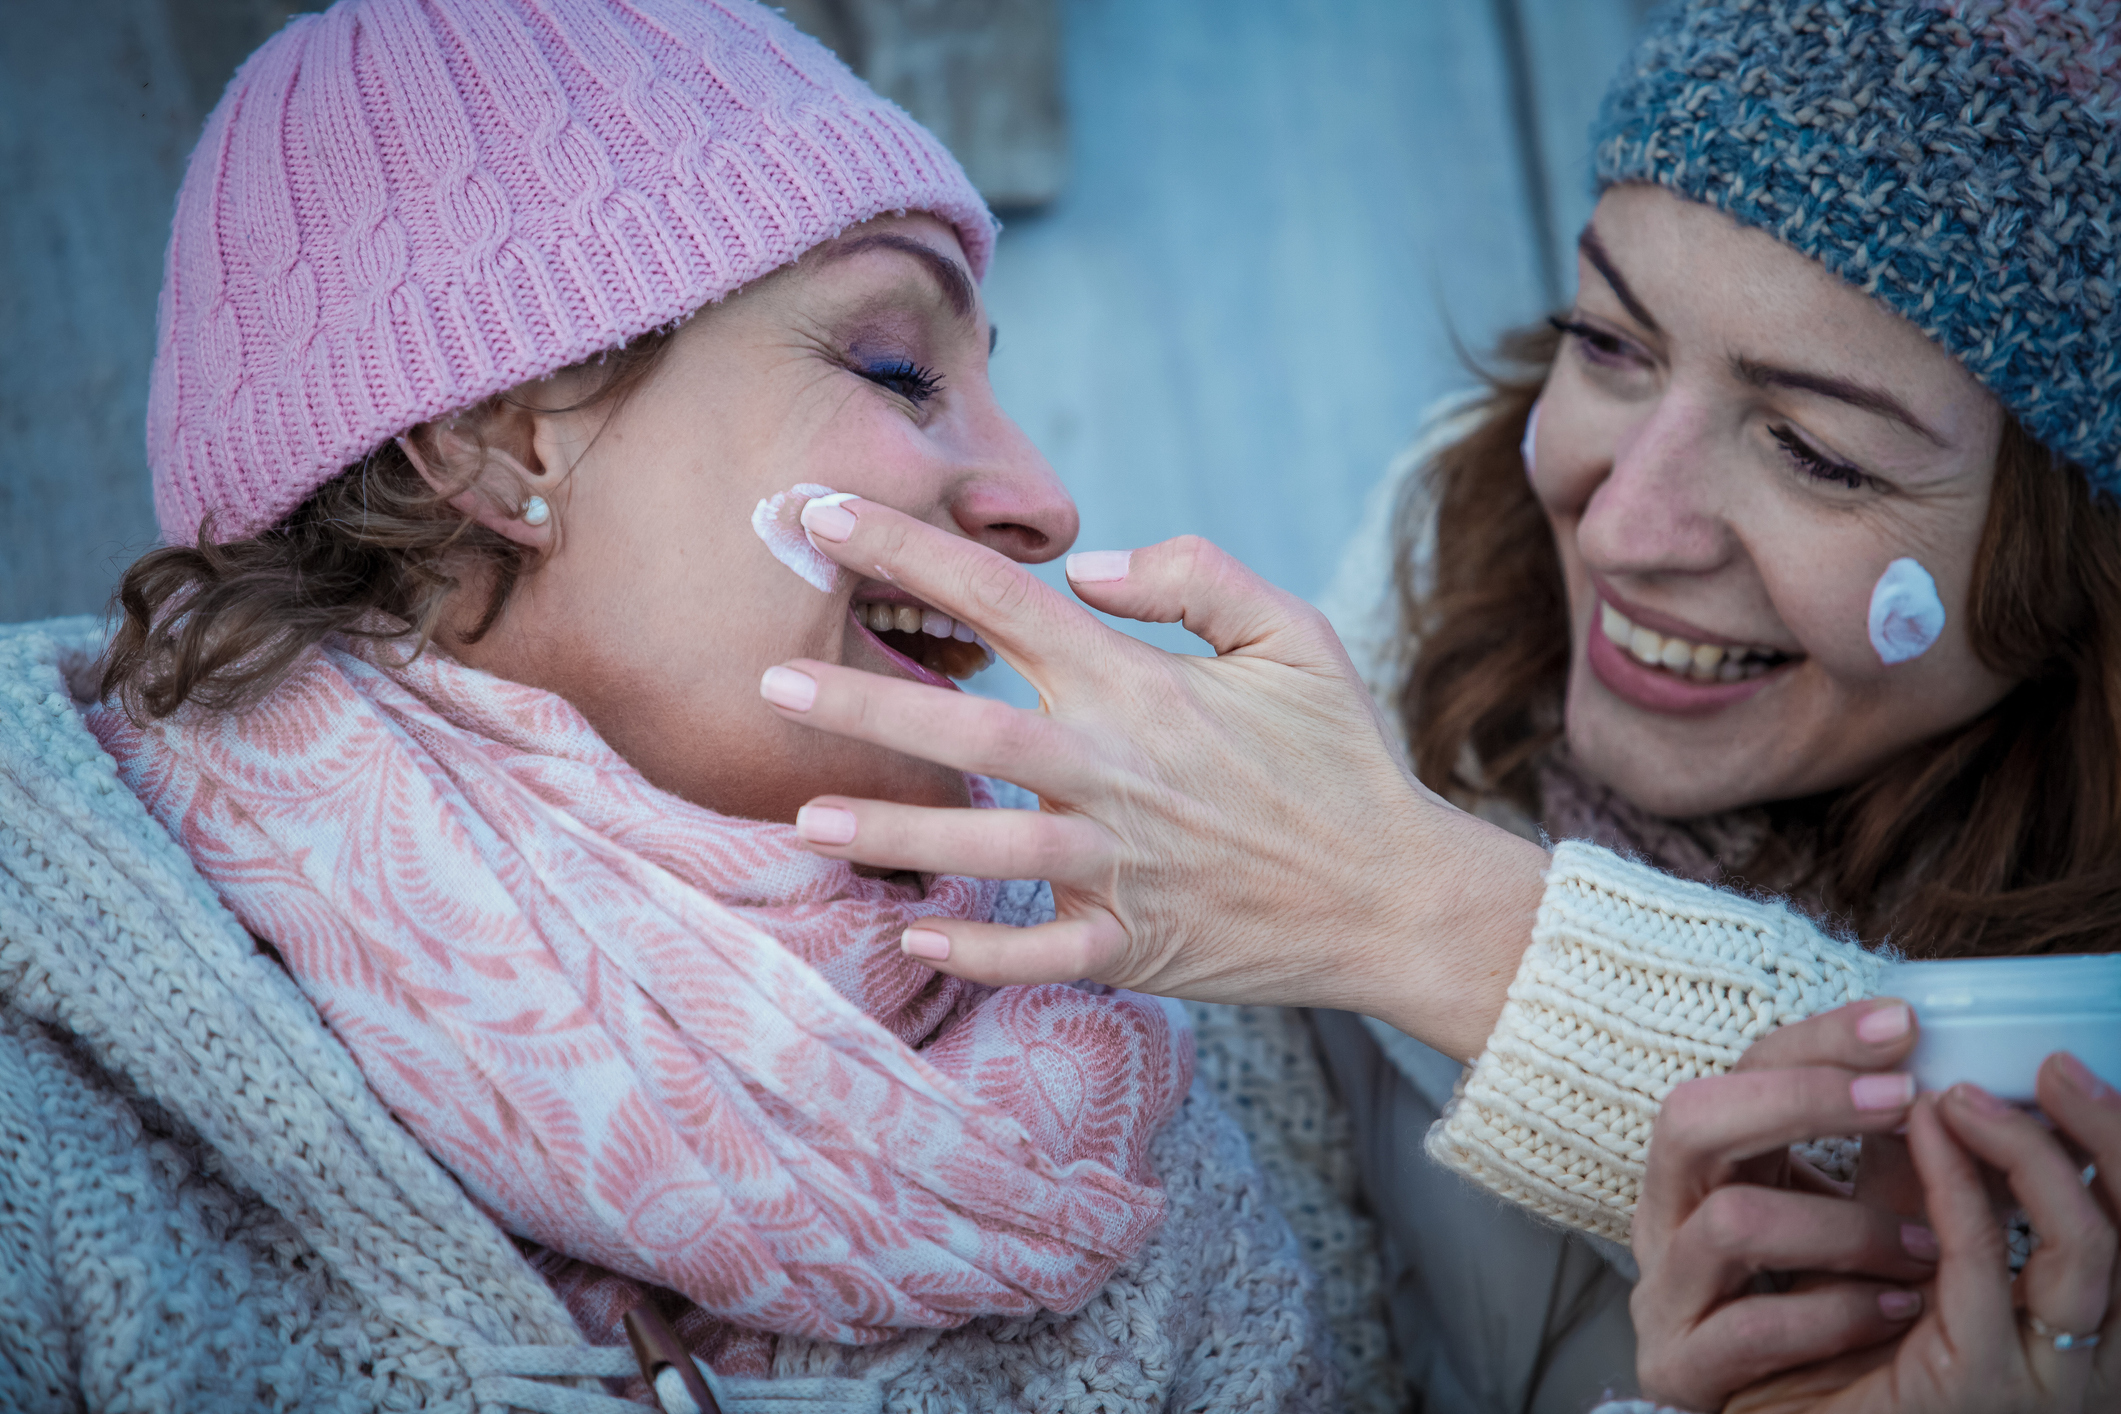 Close-up shot of a smiling women in warm clothing using facial cream outdoors.